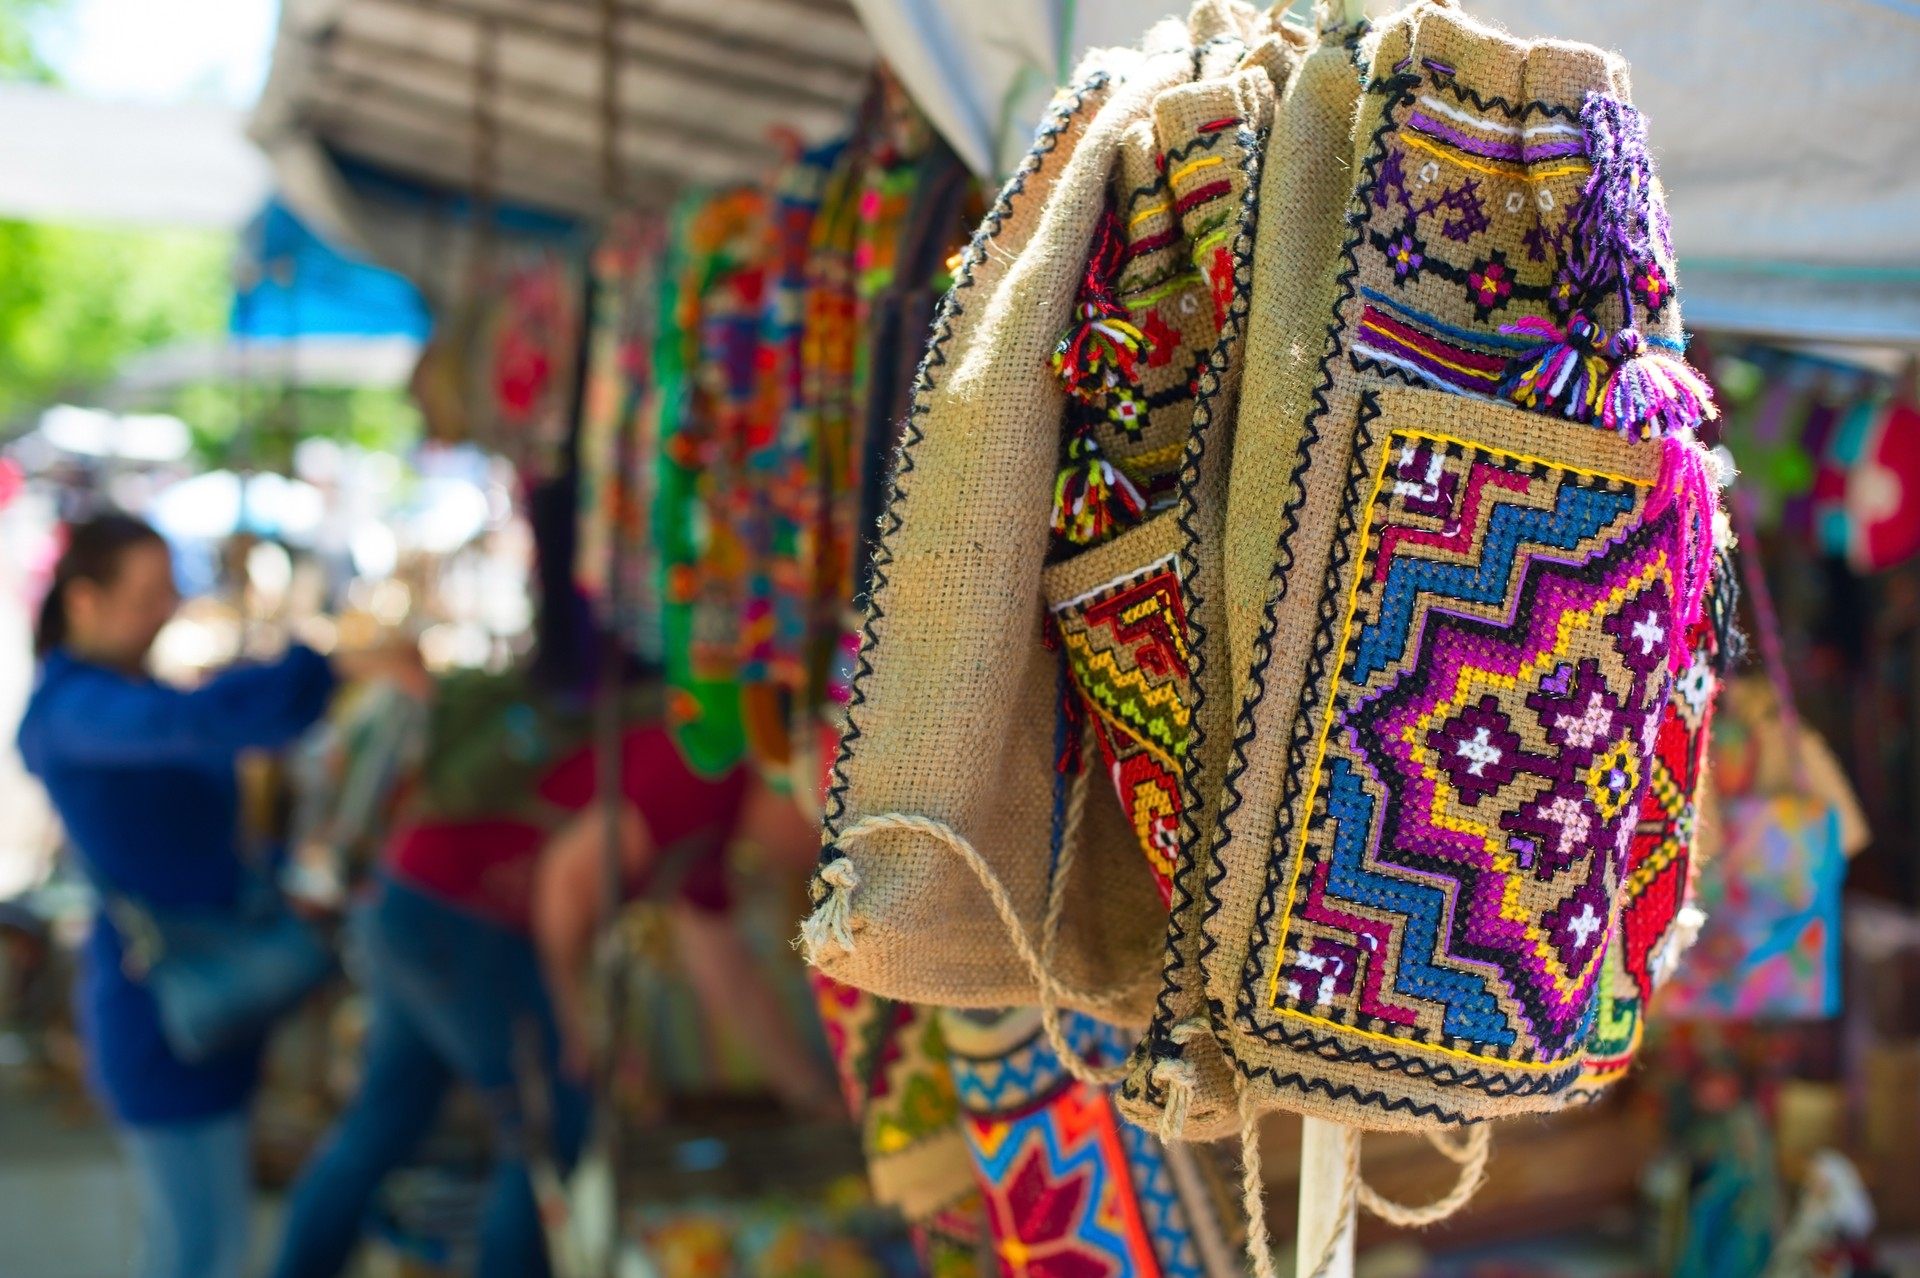 Bags for sale at the Dry Bridge Flea Market in Tbilisi